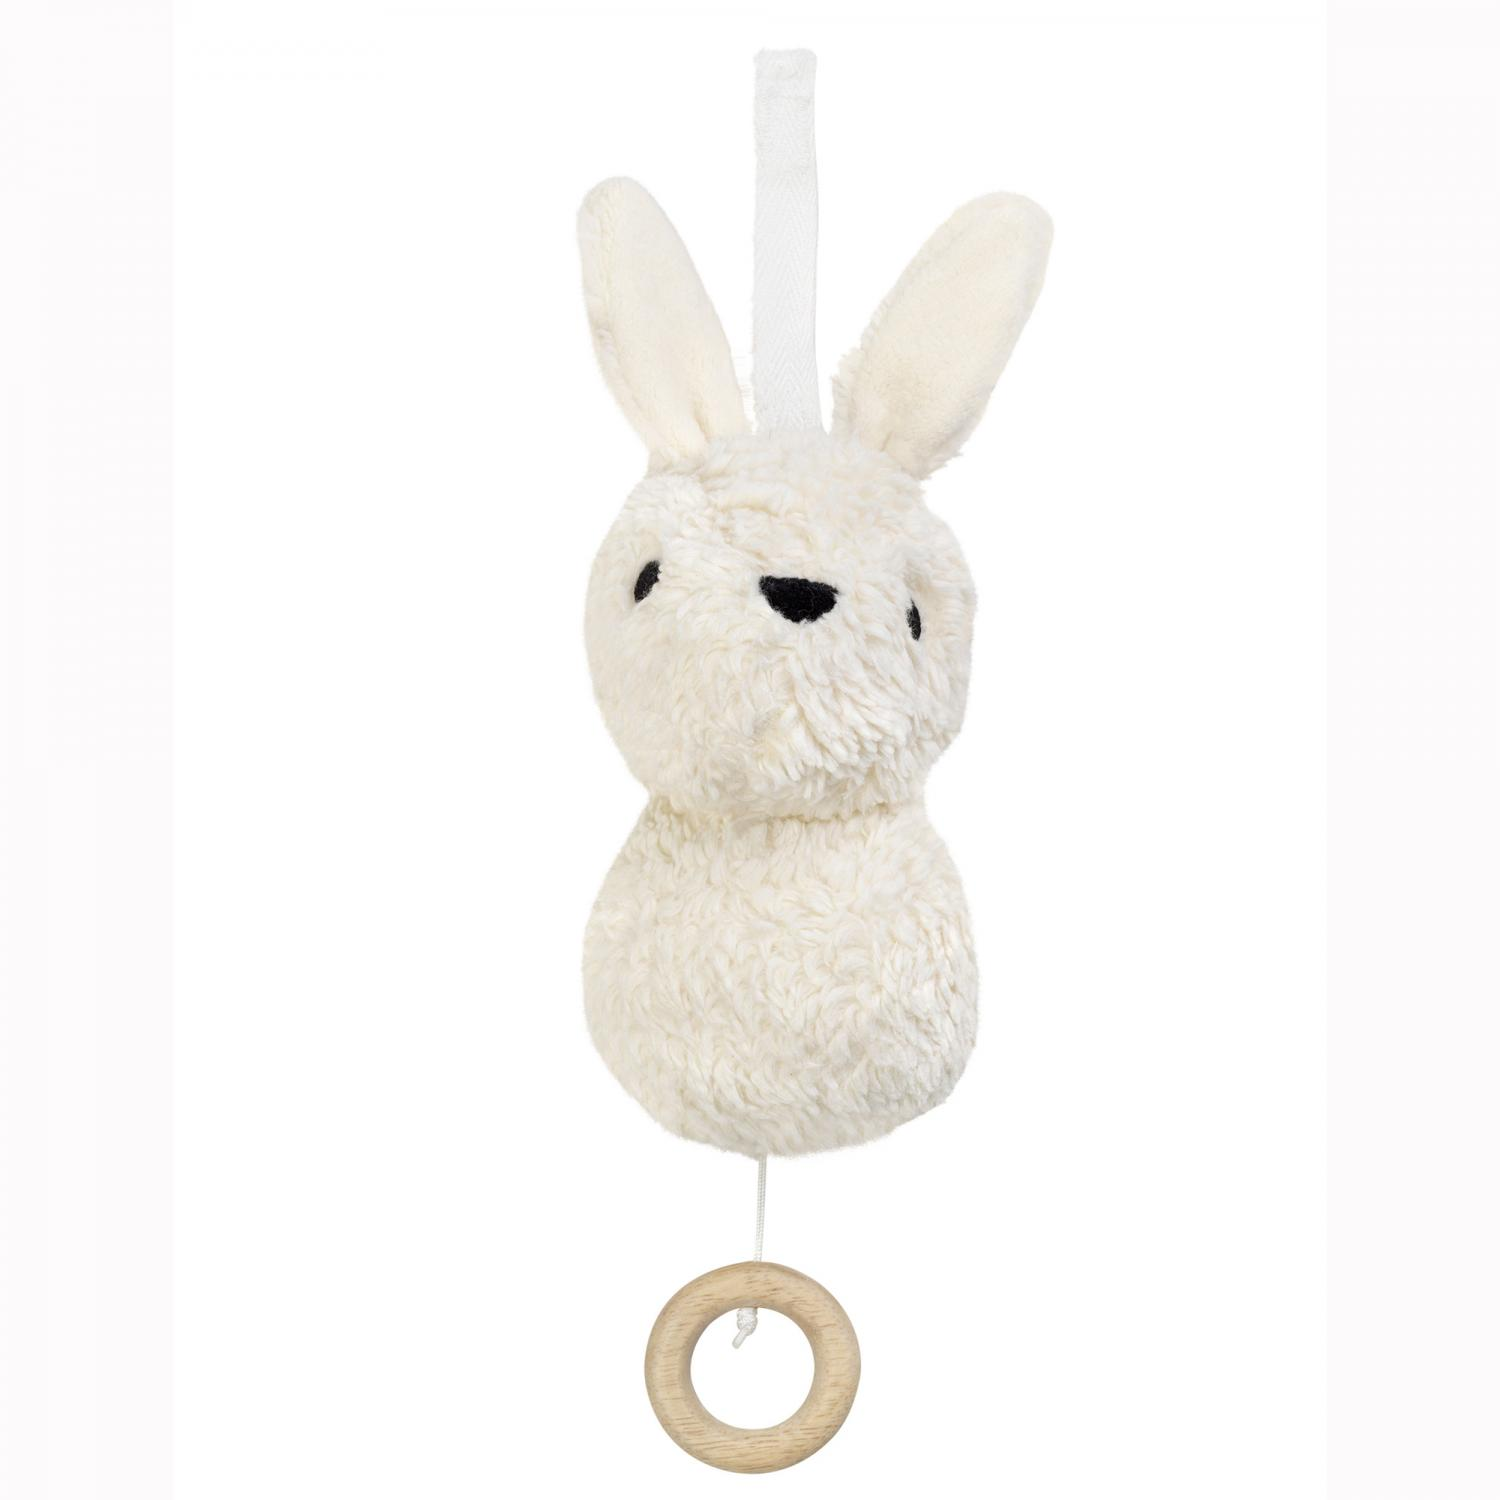 Aura rabbit musical toy